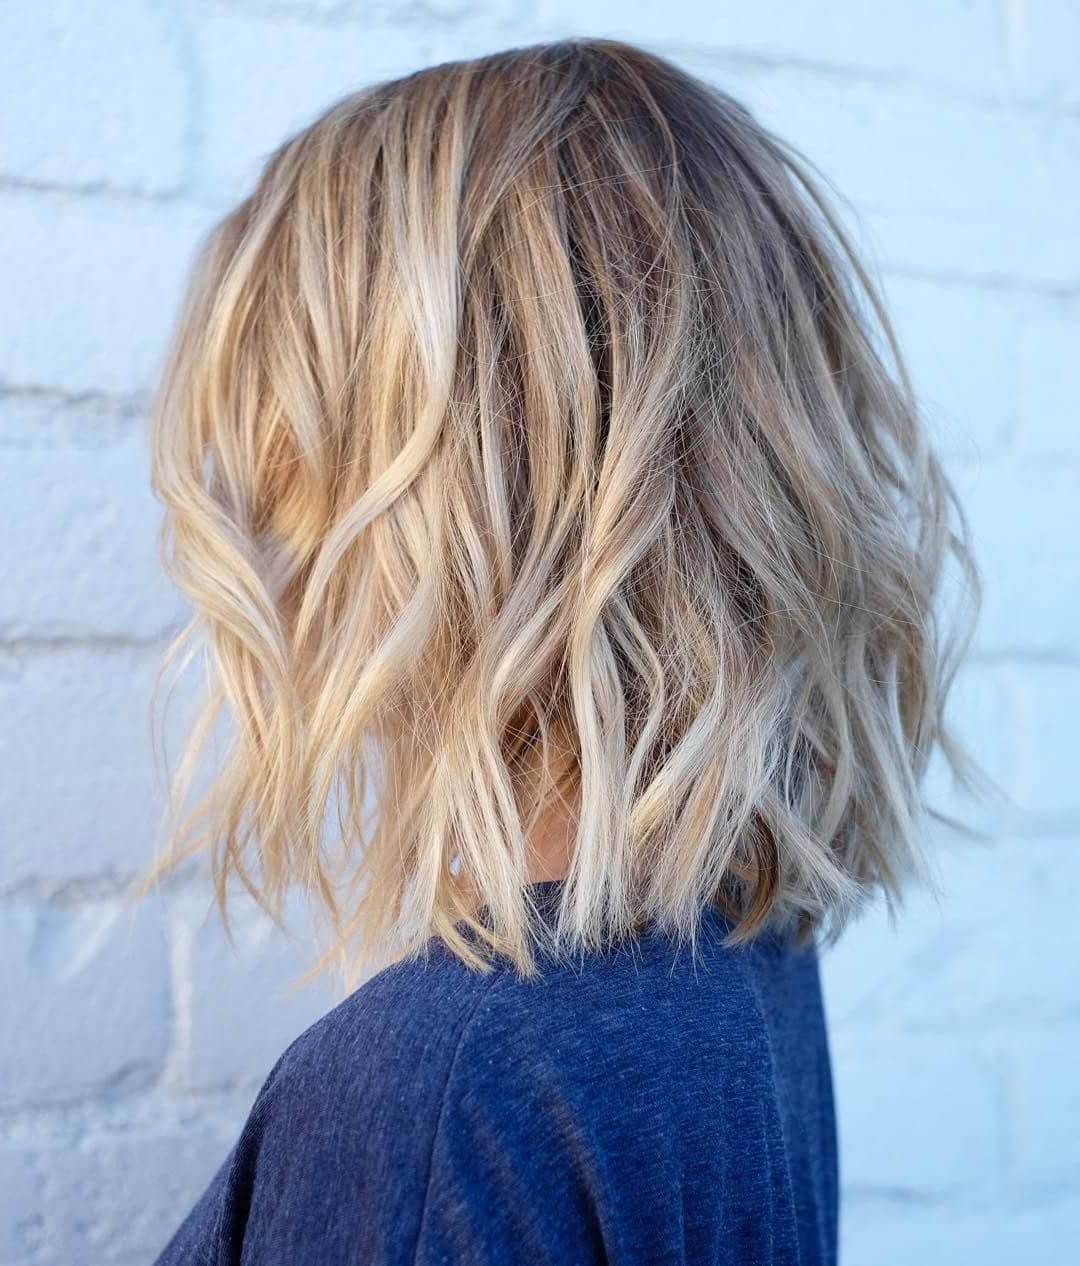 50 Fresh Short Blonde Hair Ideas To Update Your Style In 2018 Within Short Blonde Hair With Bangs (View 13 of 25)